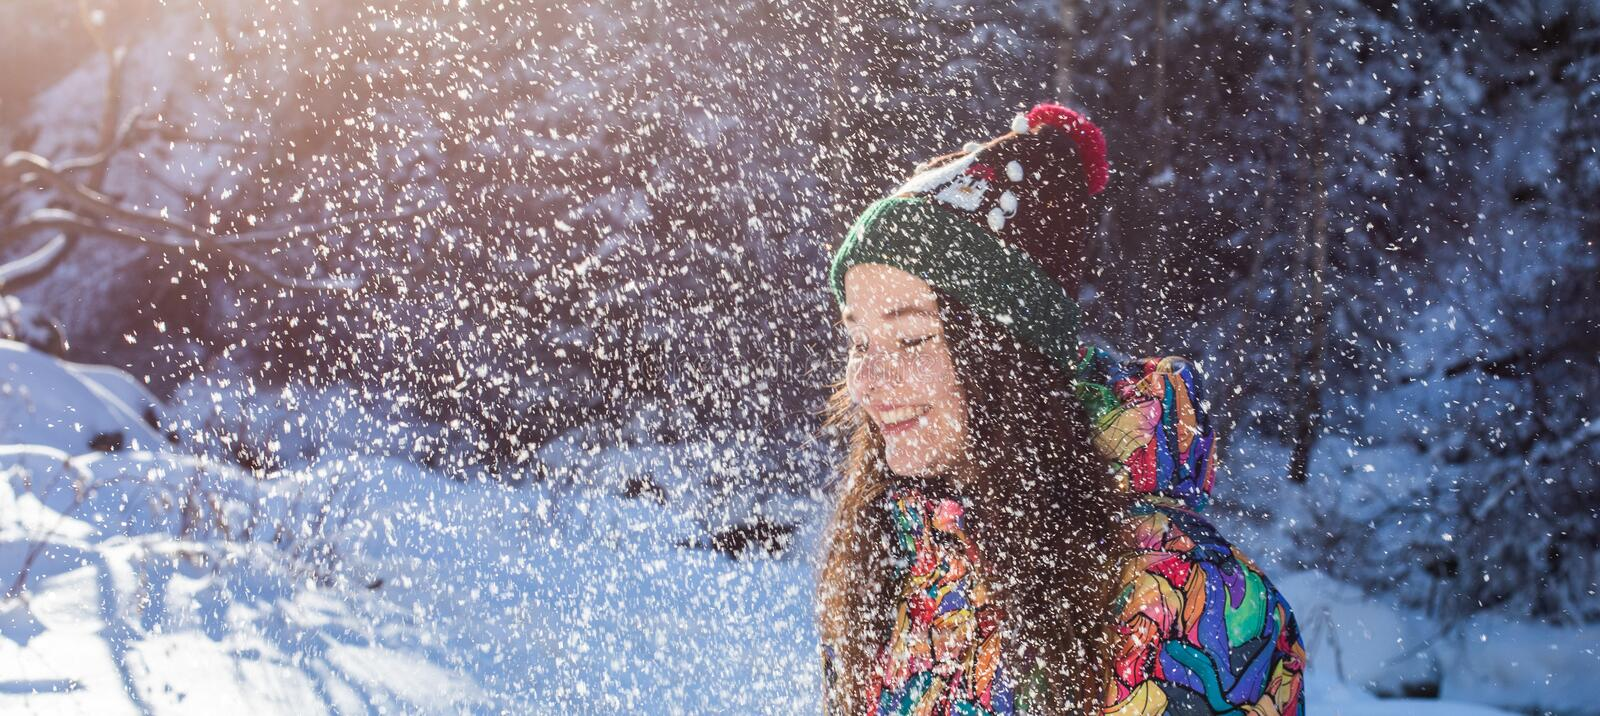 Happy winter fun woman throwing snow banner. Panorama crop of outdoor lifestyle girl playing in snow outside laughing in royalty free stock image